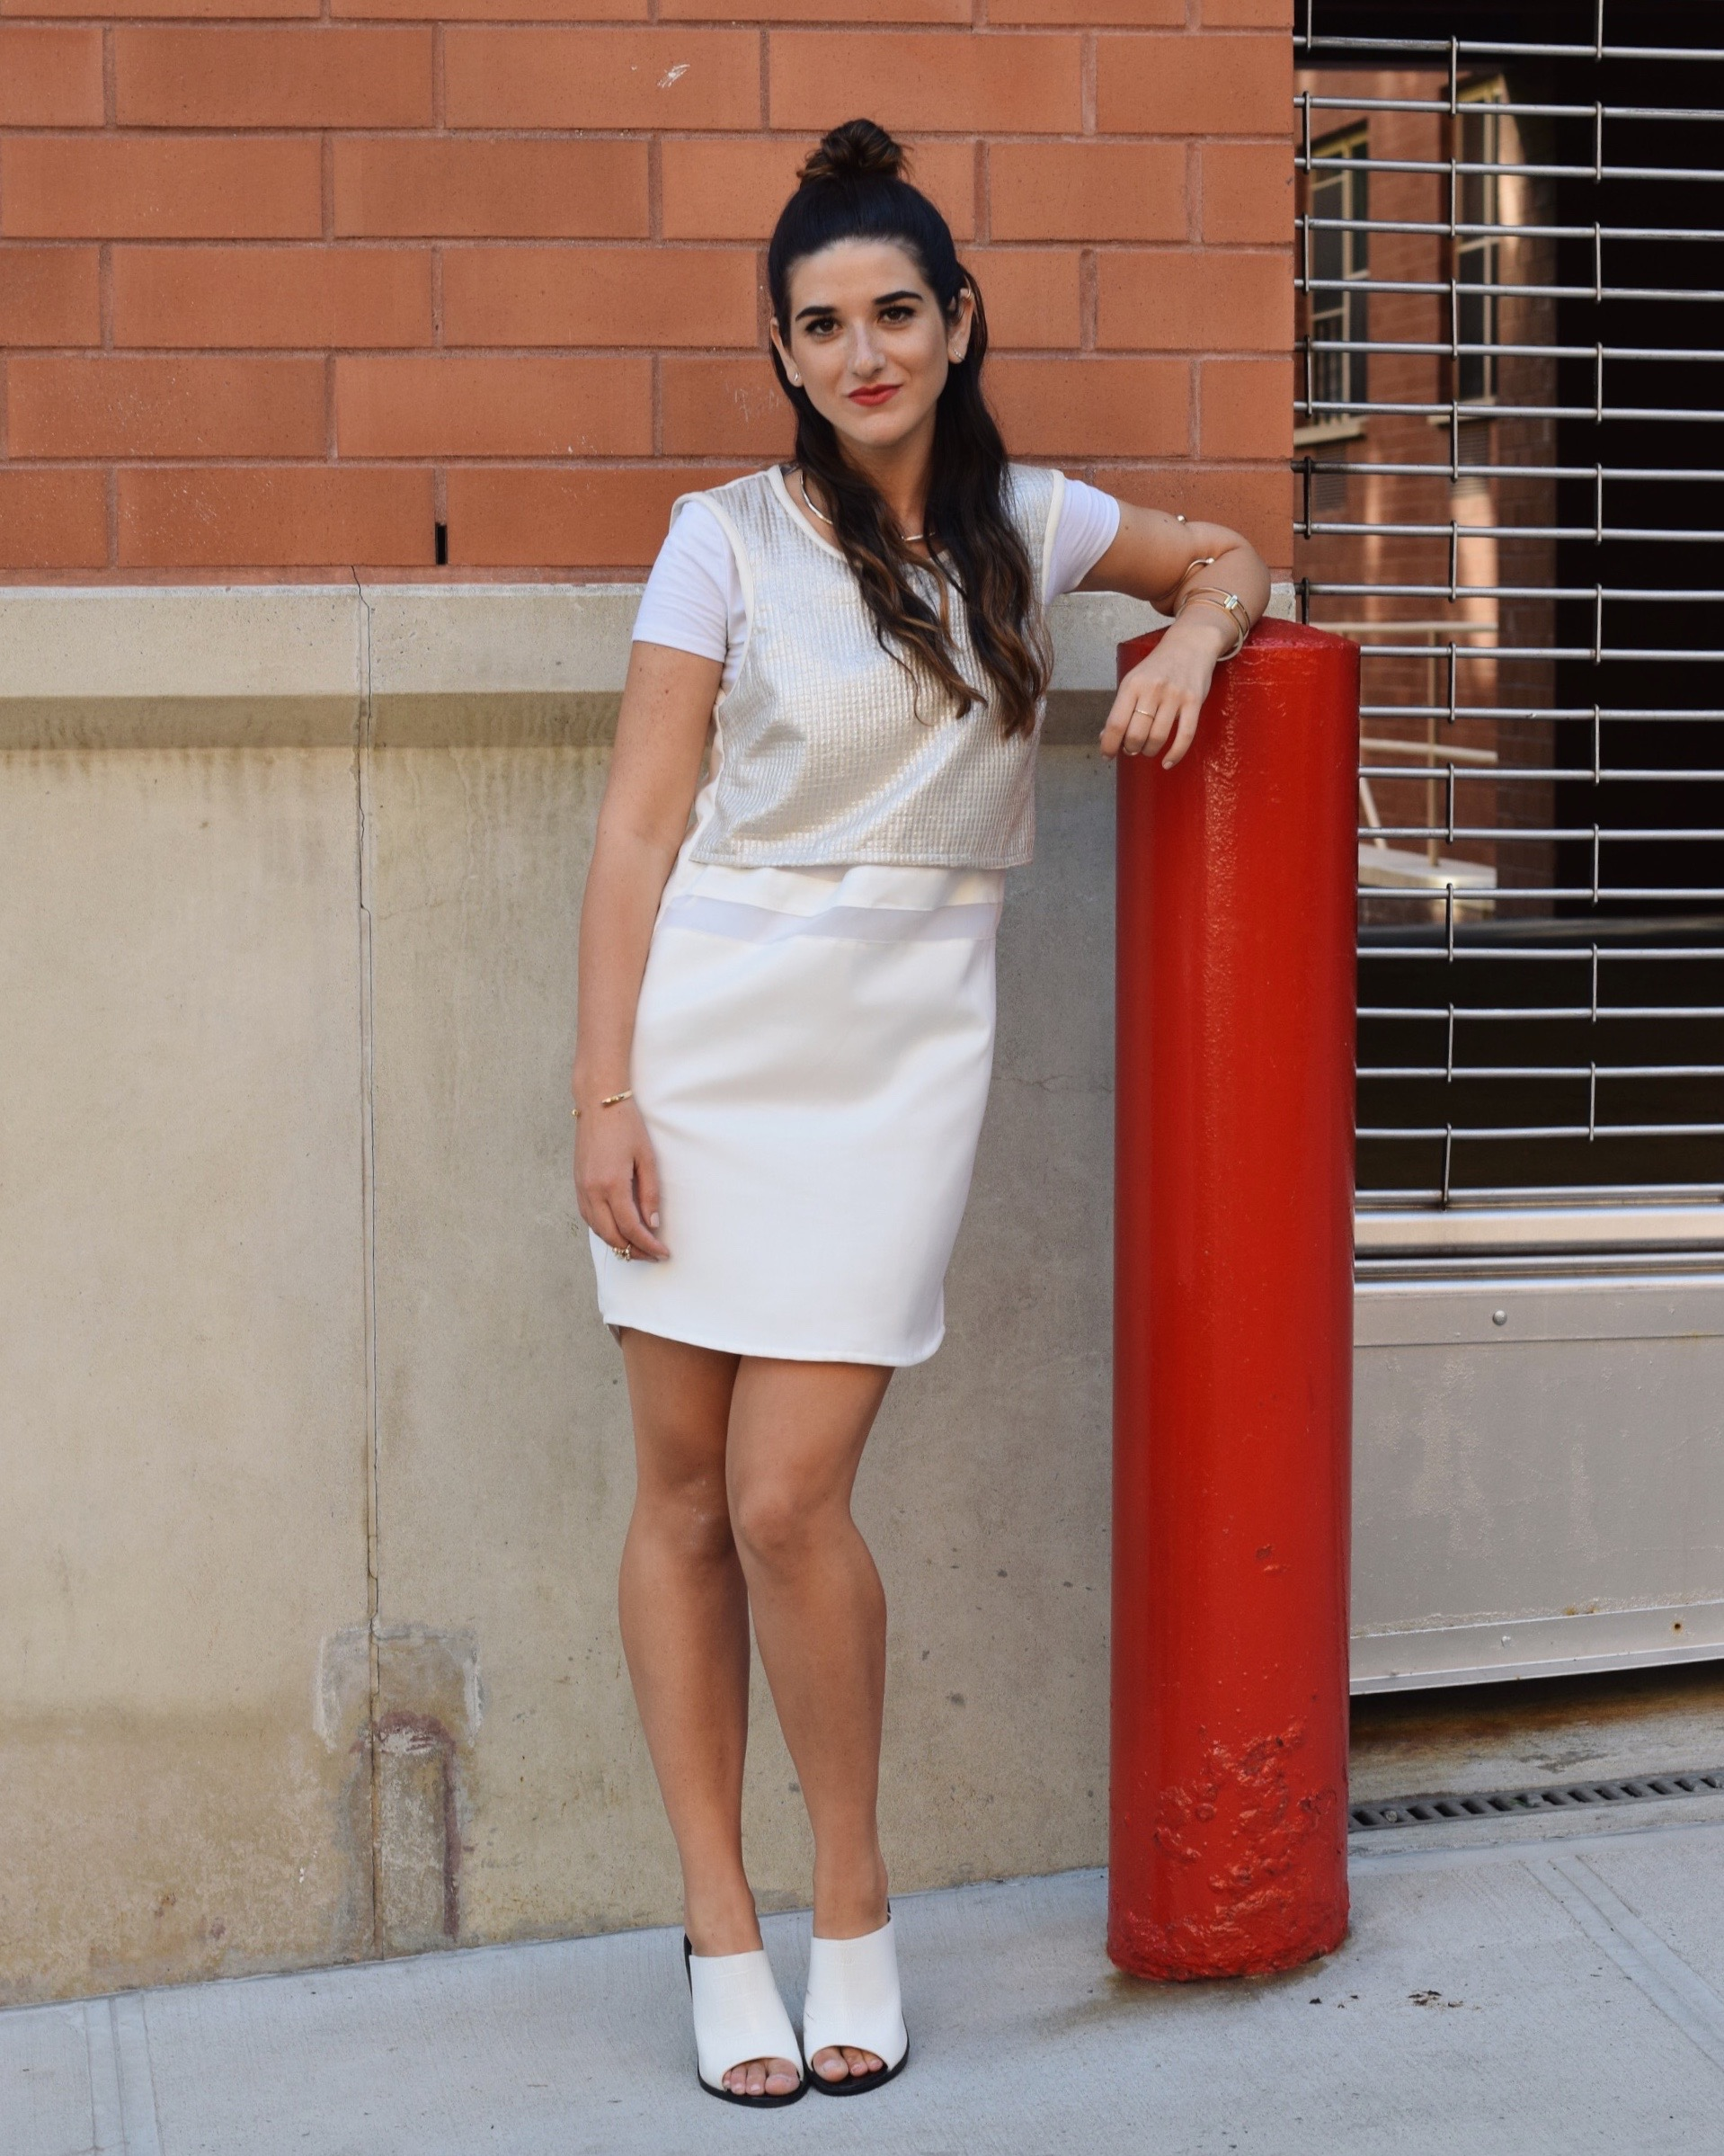 All White Look Gold Jewelry Louboutins & Love Fashion Blog Esther Santer Street Style NYC Blogger Lydell NYC Lumier Bariano Red Light PR Collab IfChic Mod Mules Topknot Hair Girl Model Photoshoot Collar Necklace Bracelet Dress OOTD Outfit Summer Women.jpg